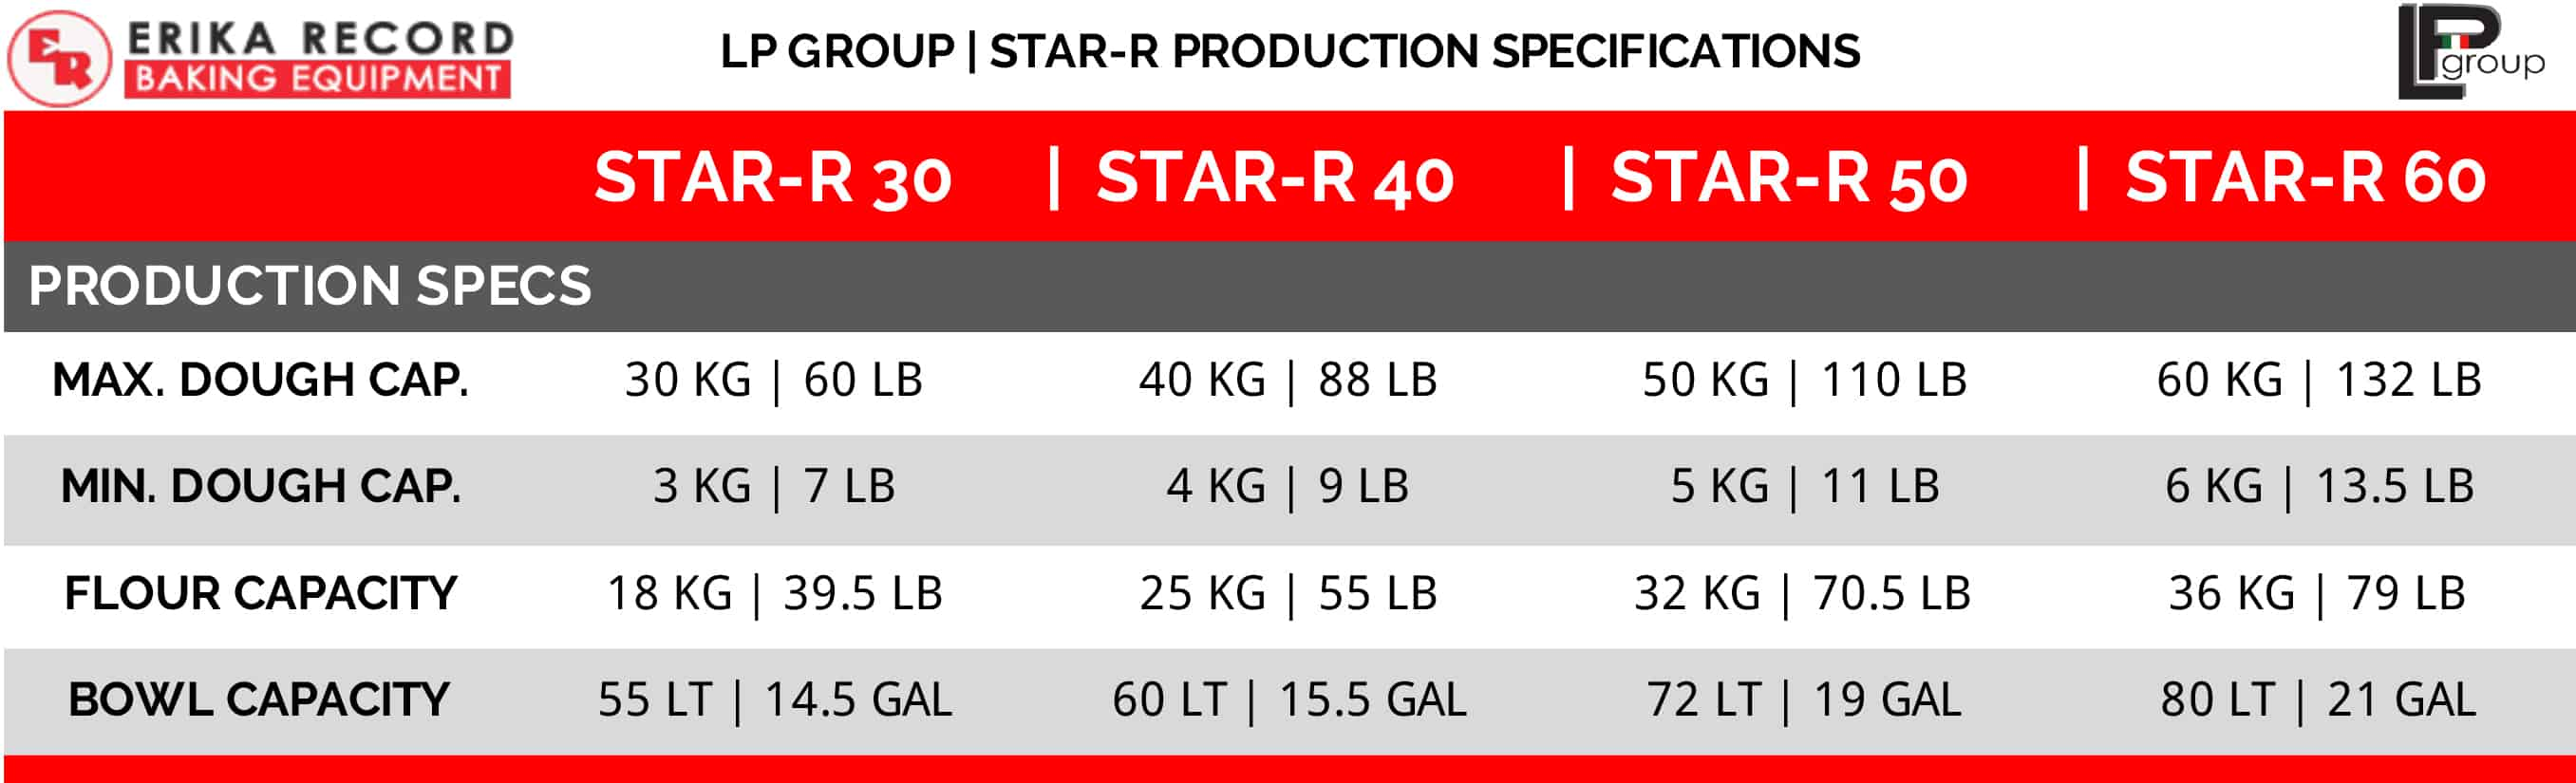 LP Group | Star-R Spiral Mixer | Dough Production Specifications